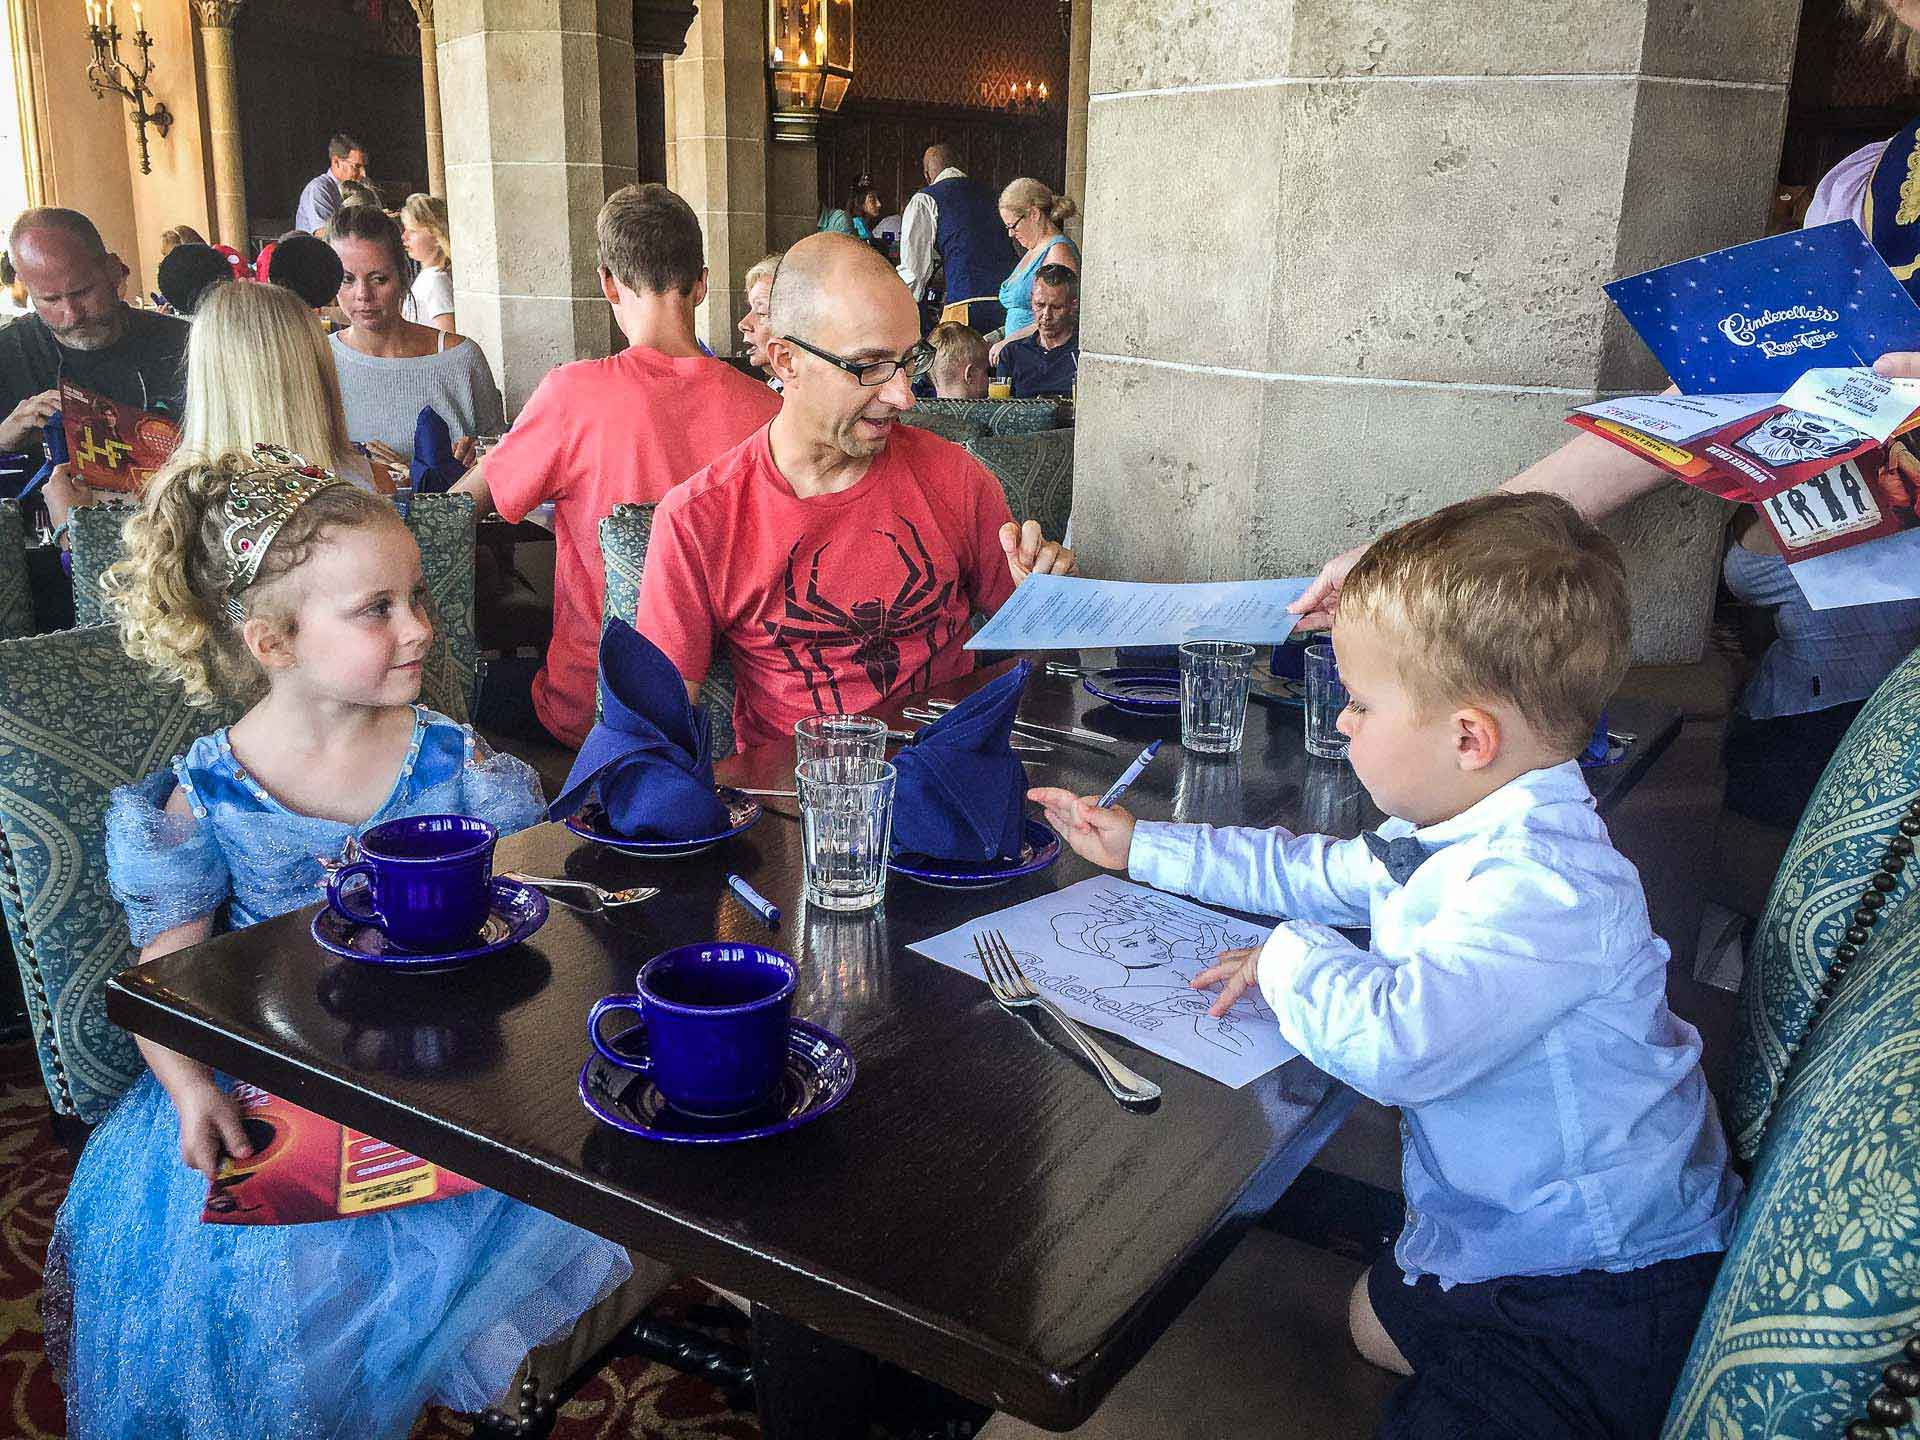 Family Can Travel - Things I Did't Know about Visiting Magic Kingdom - Enjoying a family breakfast at Cinderella's Royal Table